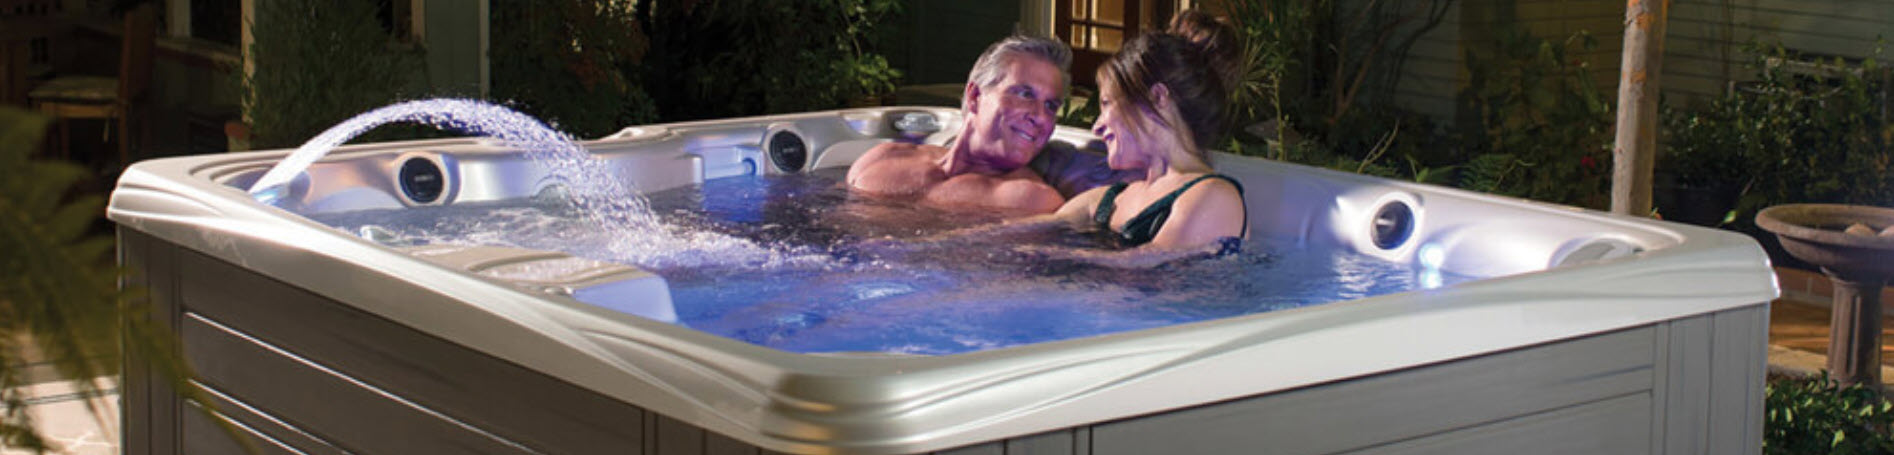 Plan the Perfect Stay-cation With a Spa at Home, Hot Tubs Hatfield MN